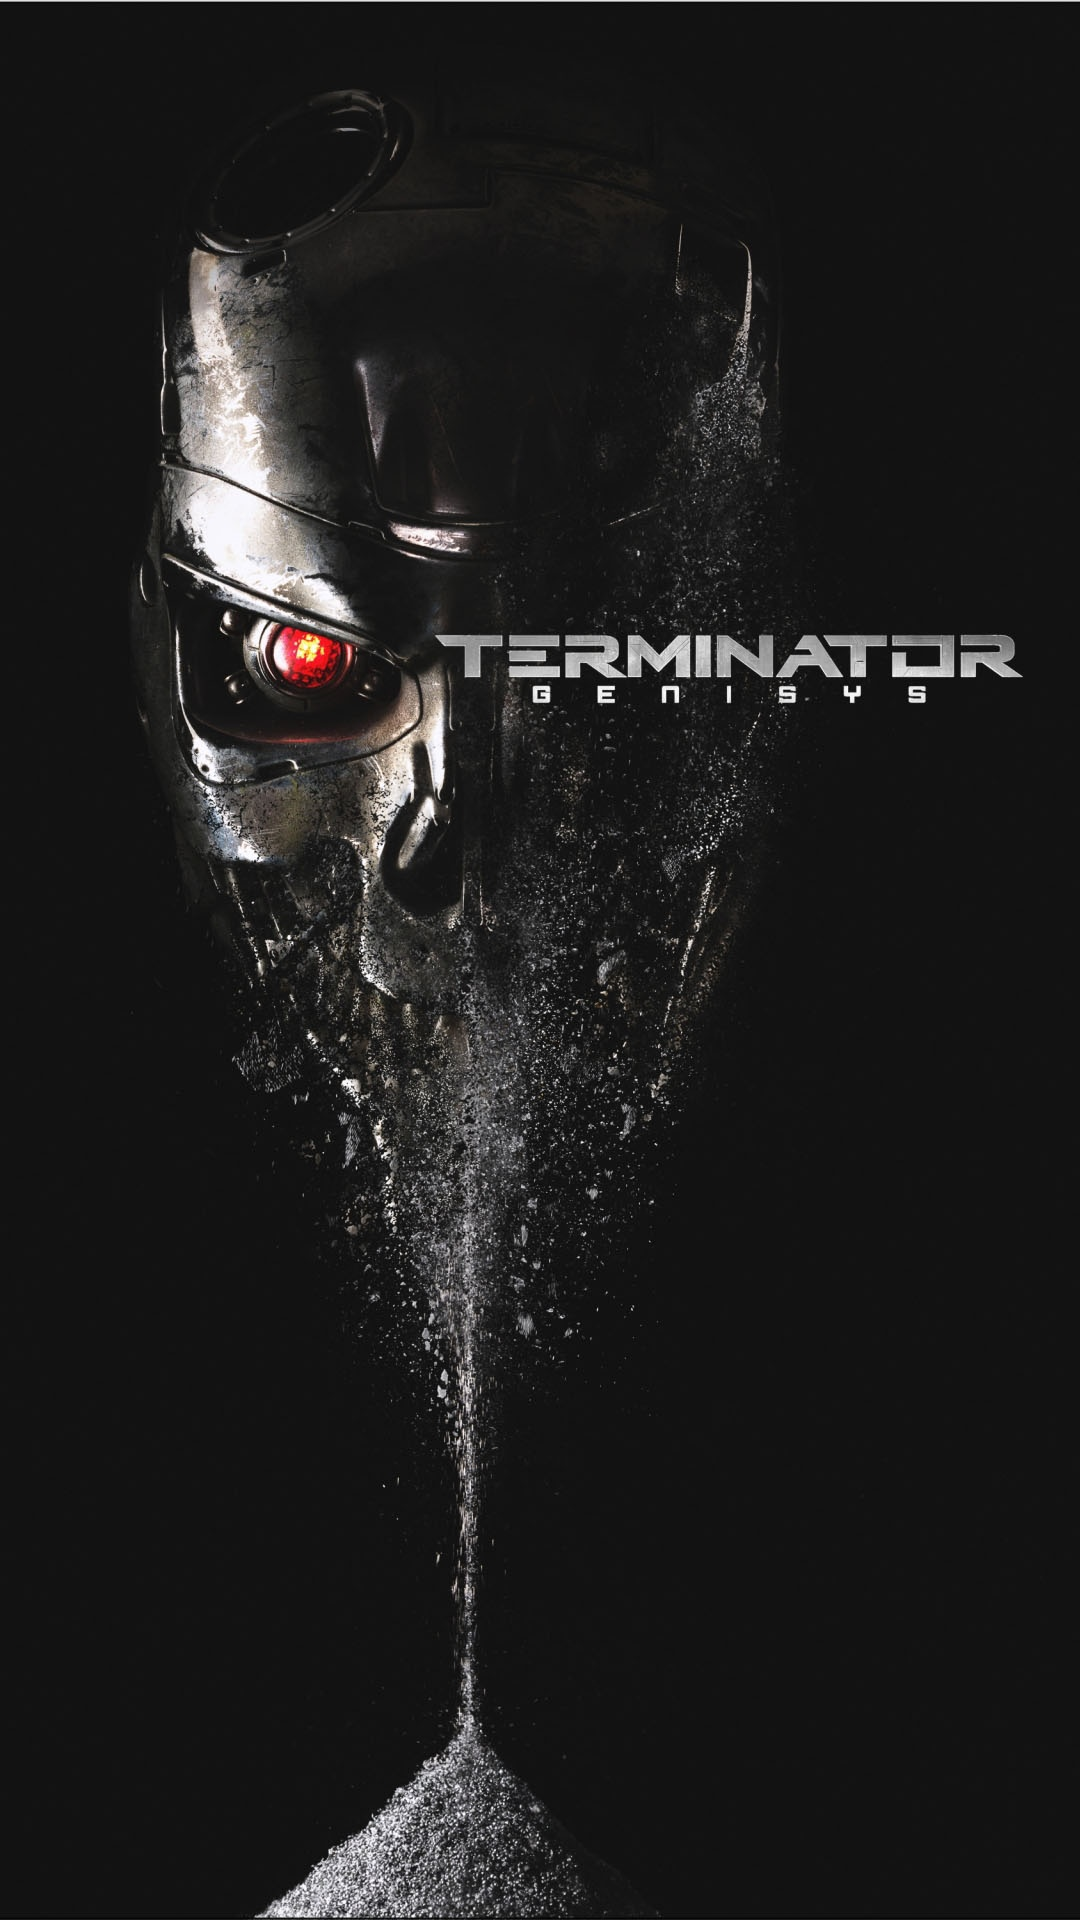 Terminator Genisys Poster 2015